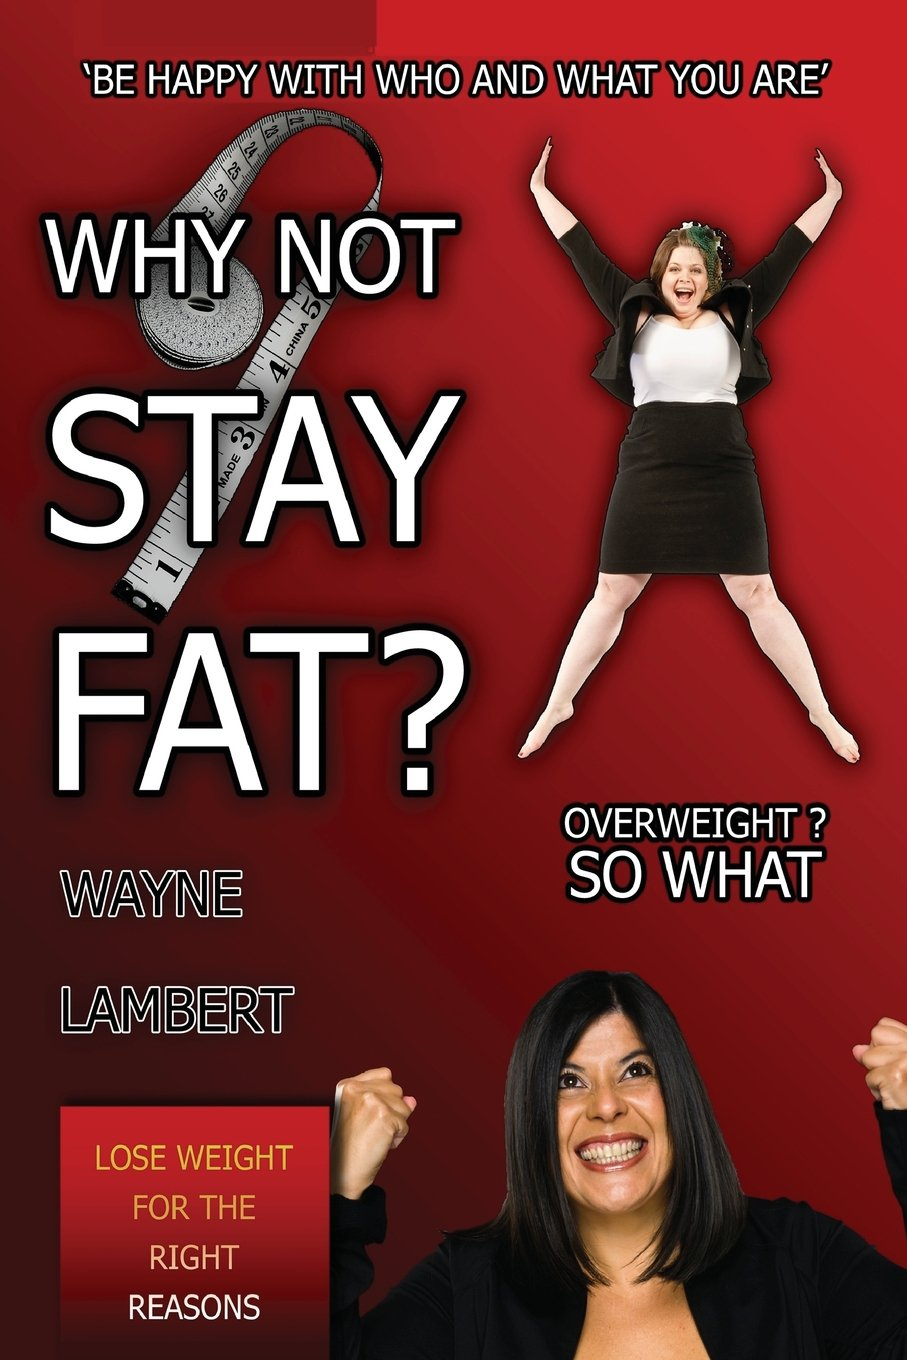 Read Online Why Not Stay Fat? - Overweight? So What. 'be Happy with Who and What You Are' ebook